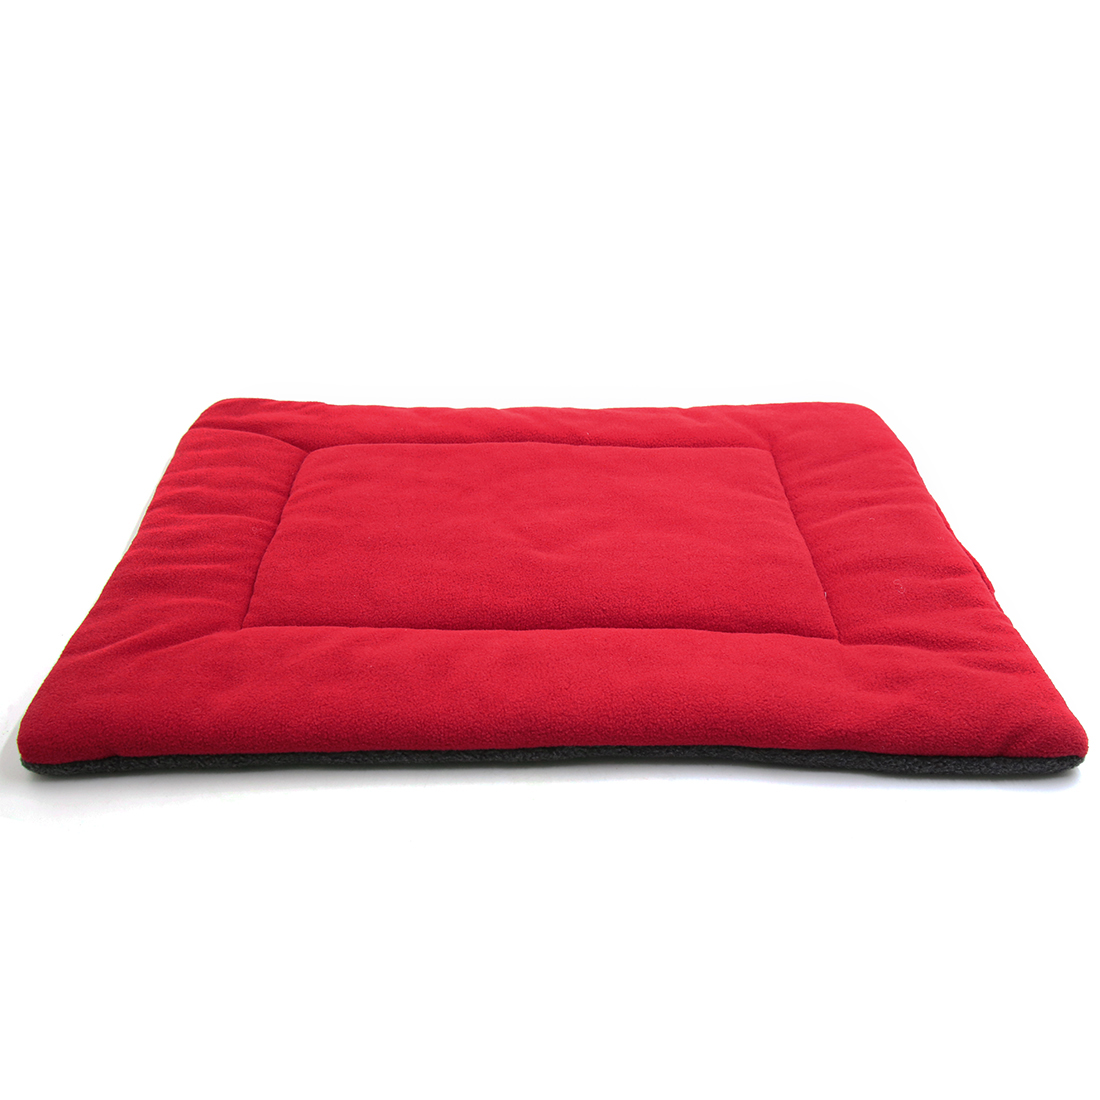 Fleece Reversible Mat Cushion Pad Bed Dog Cat Puppy Pet Red XL